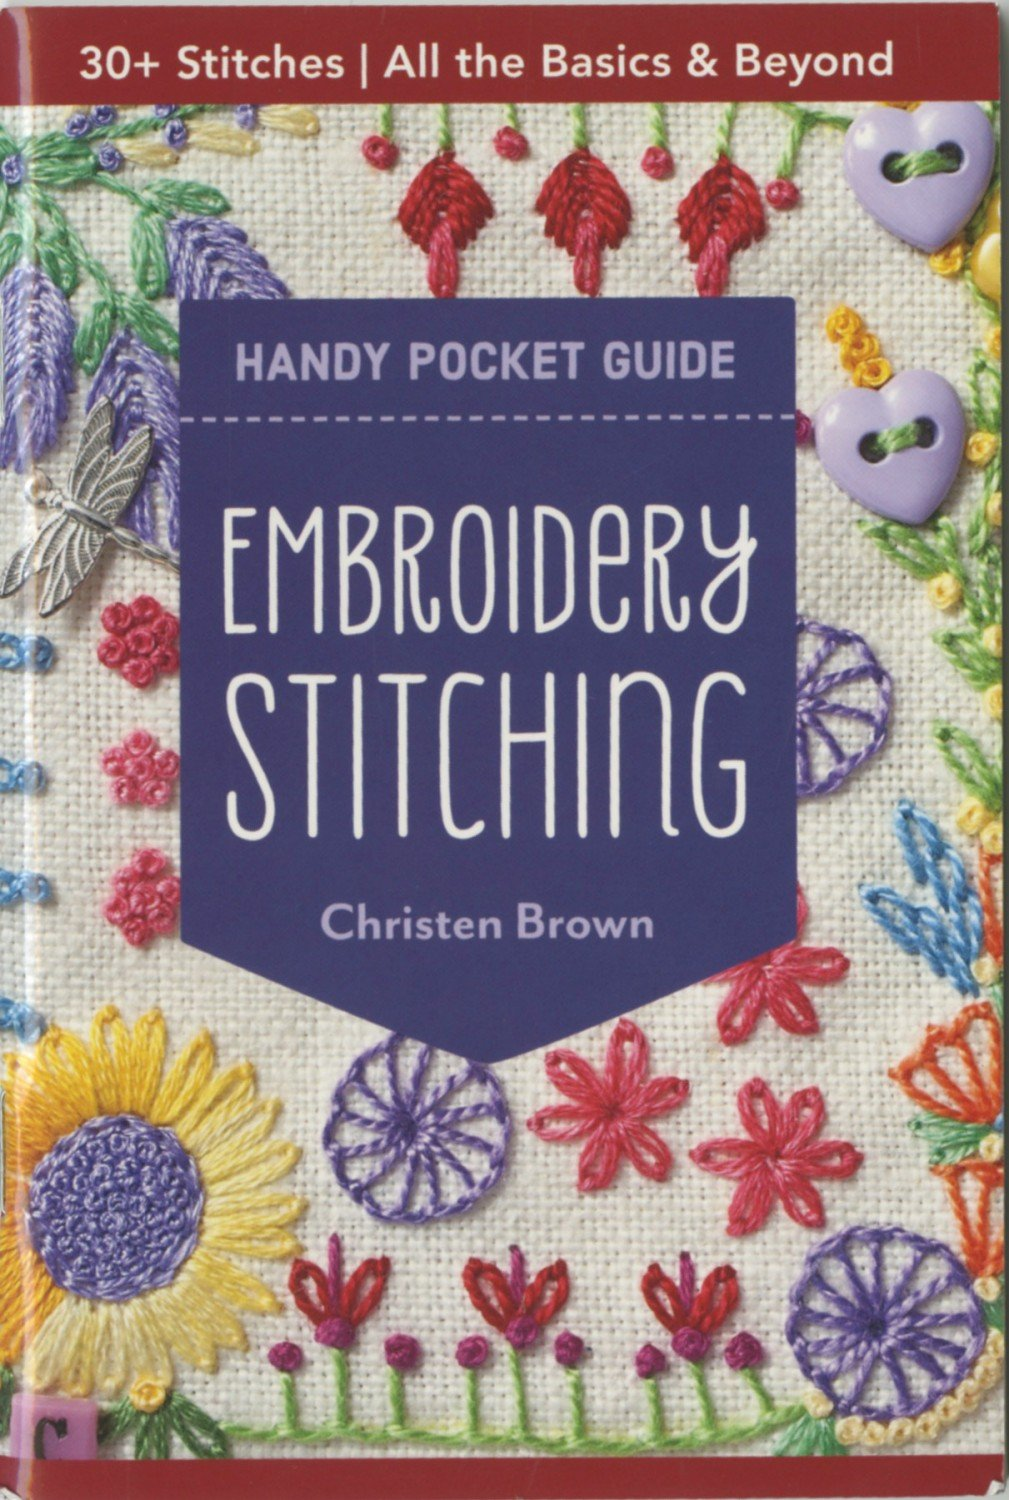 Embroidery Stitching- Handy Pocket Guide